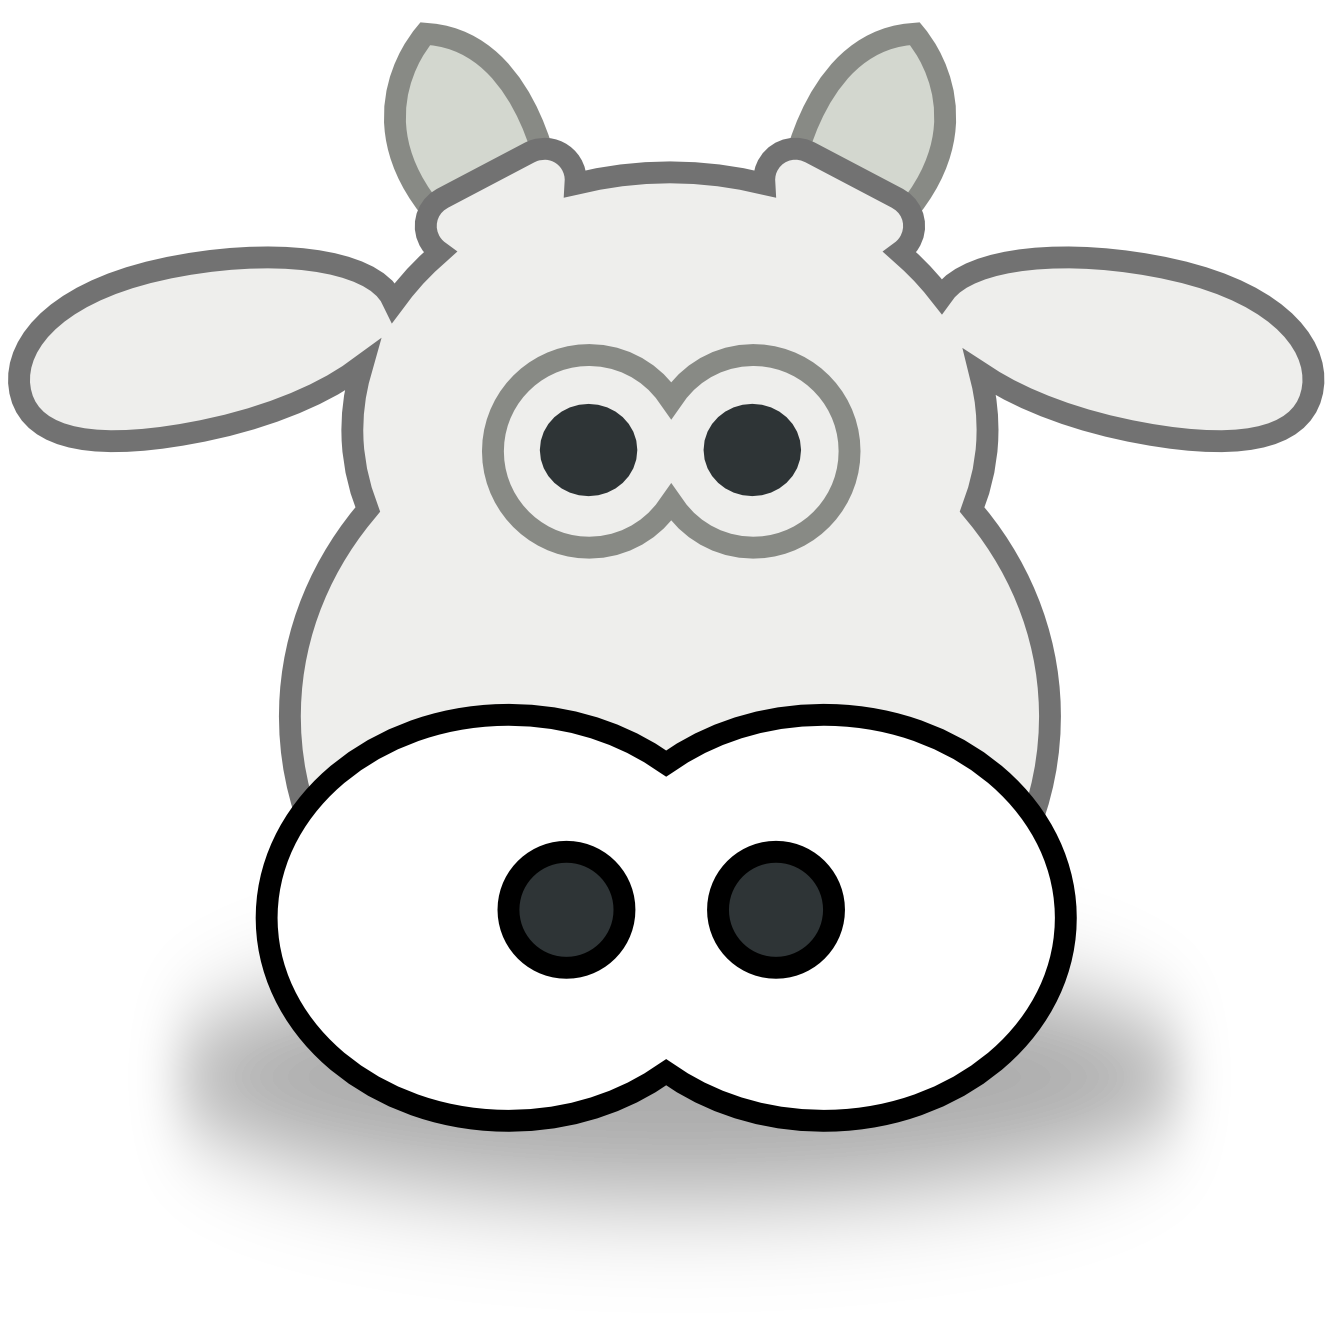 Drawn cattle printable #2